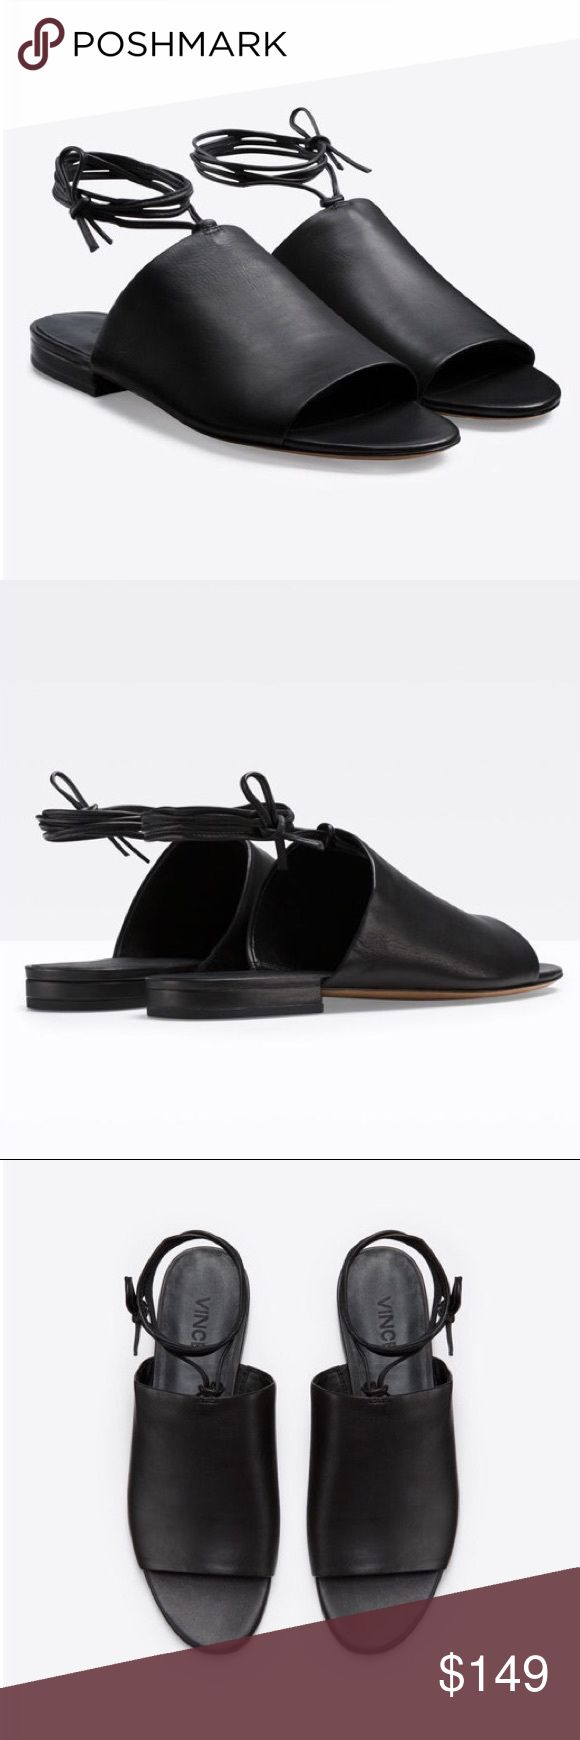 Vince Damon Black Leather Flat Sandals 7 Covered vamp and ankle-tie define Vince Damon leather slide sandal.  Ultra-smooth hand feel. Leather wrap detail. 12mm tonal leather sole. Padded insole. 100% Italian calf leather. Made in Italy. Color: black.  Size: 7.  Brand new with a box. Dust-bag is included. Vince Shoes Flats & Loafers